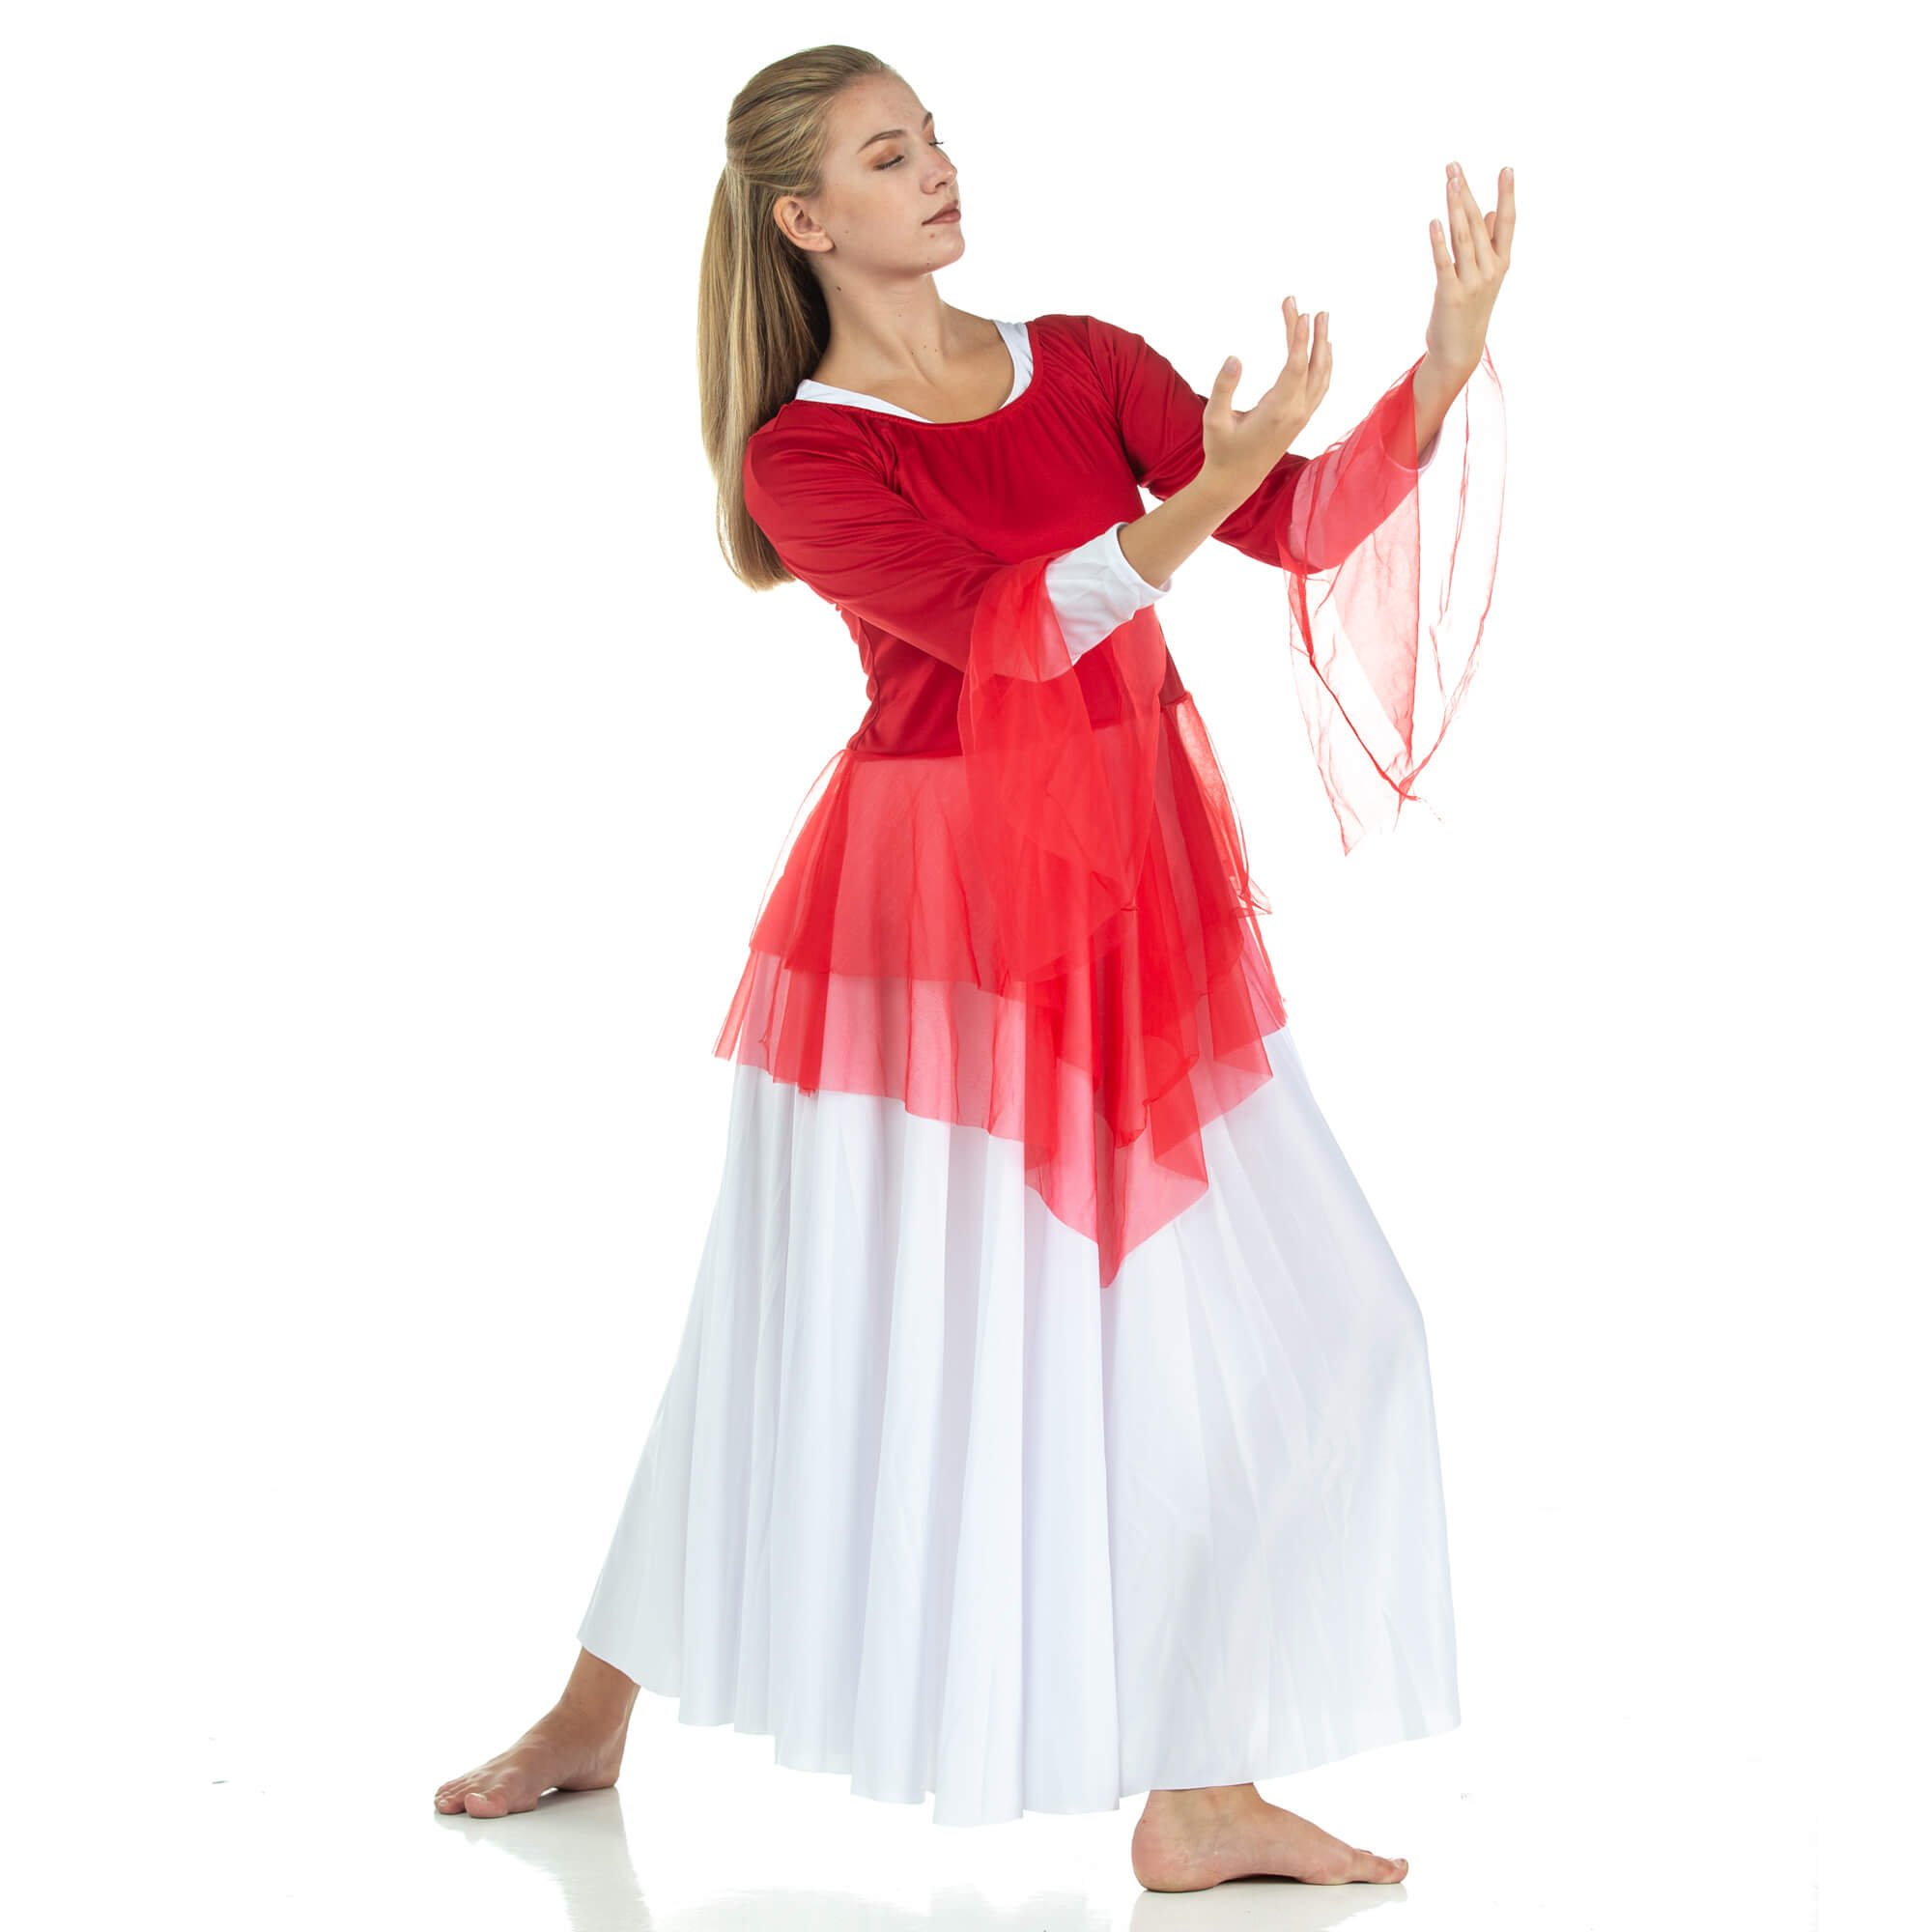 Danzcue Ministry Dance Chiffon Skirted Tunic - Click Image to Close